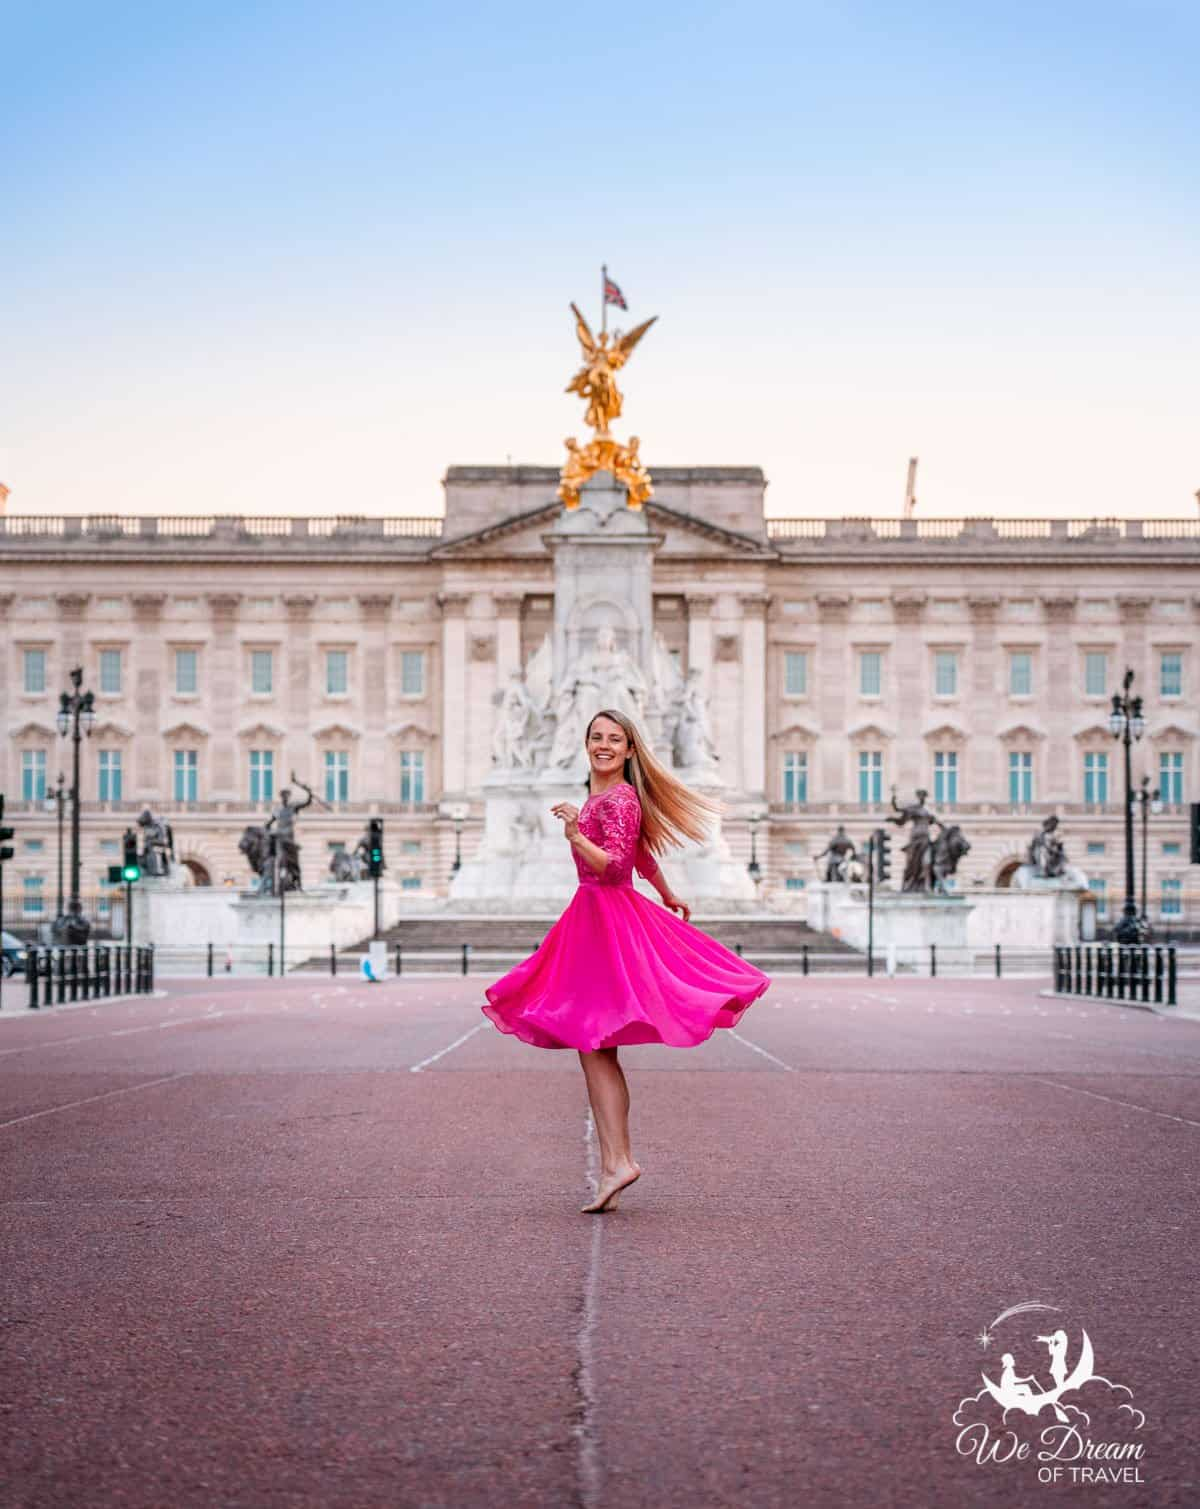 Twirling in a pink dress on The Mall in front of Buckingham Palace at sunset